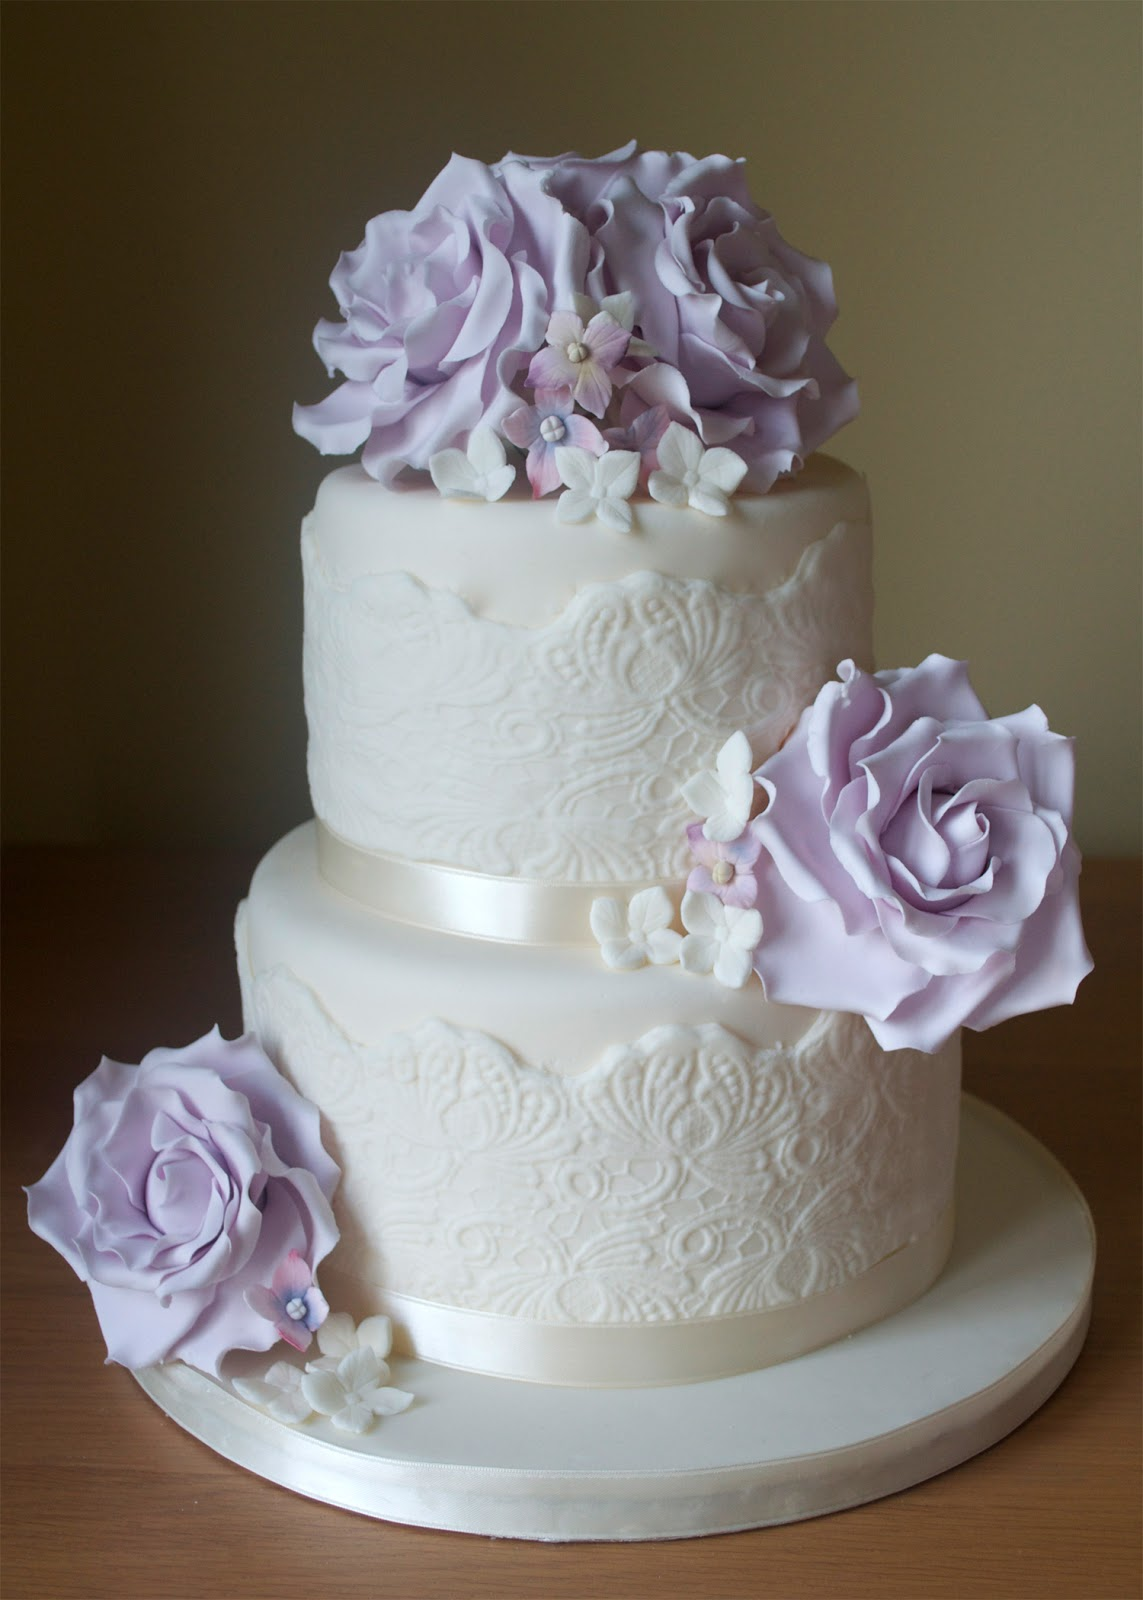 lilac roses and lace wedding cake. Black Bedroom Furniture Sets. Home Design Ideas